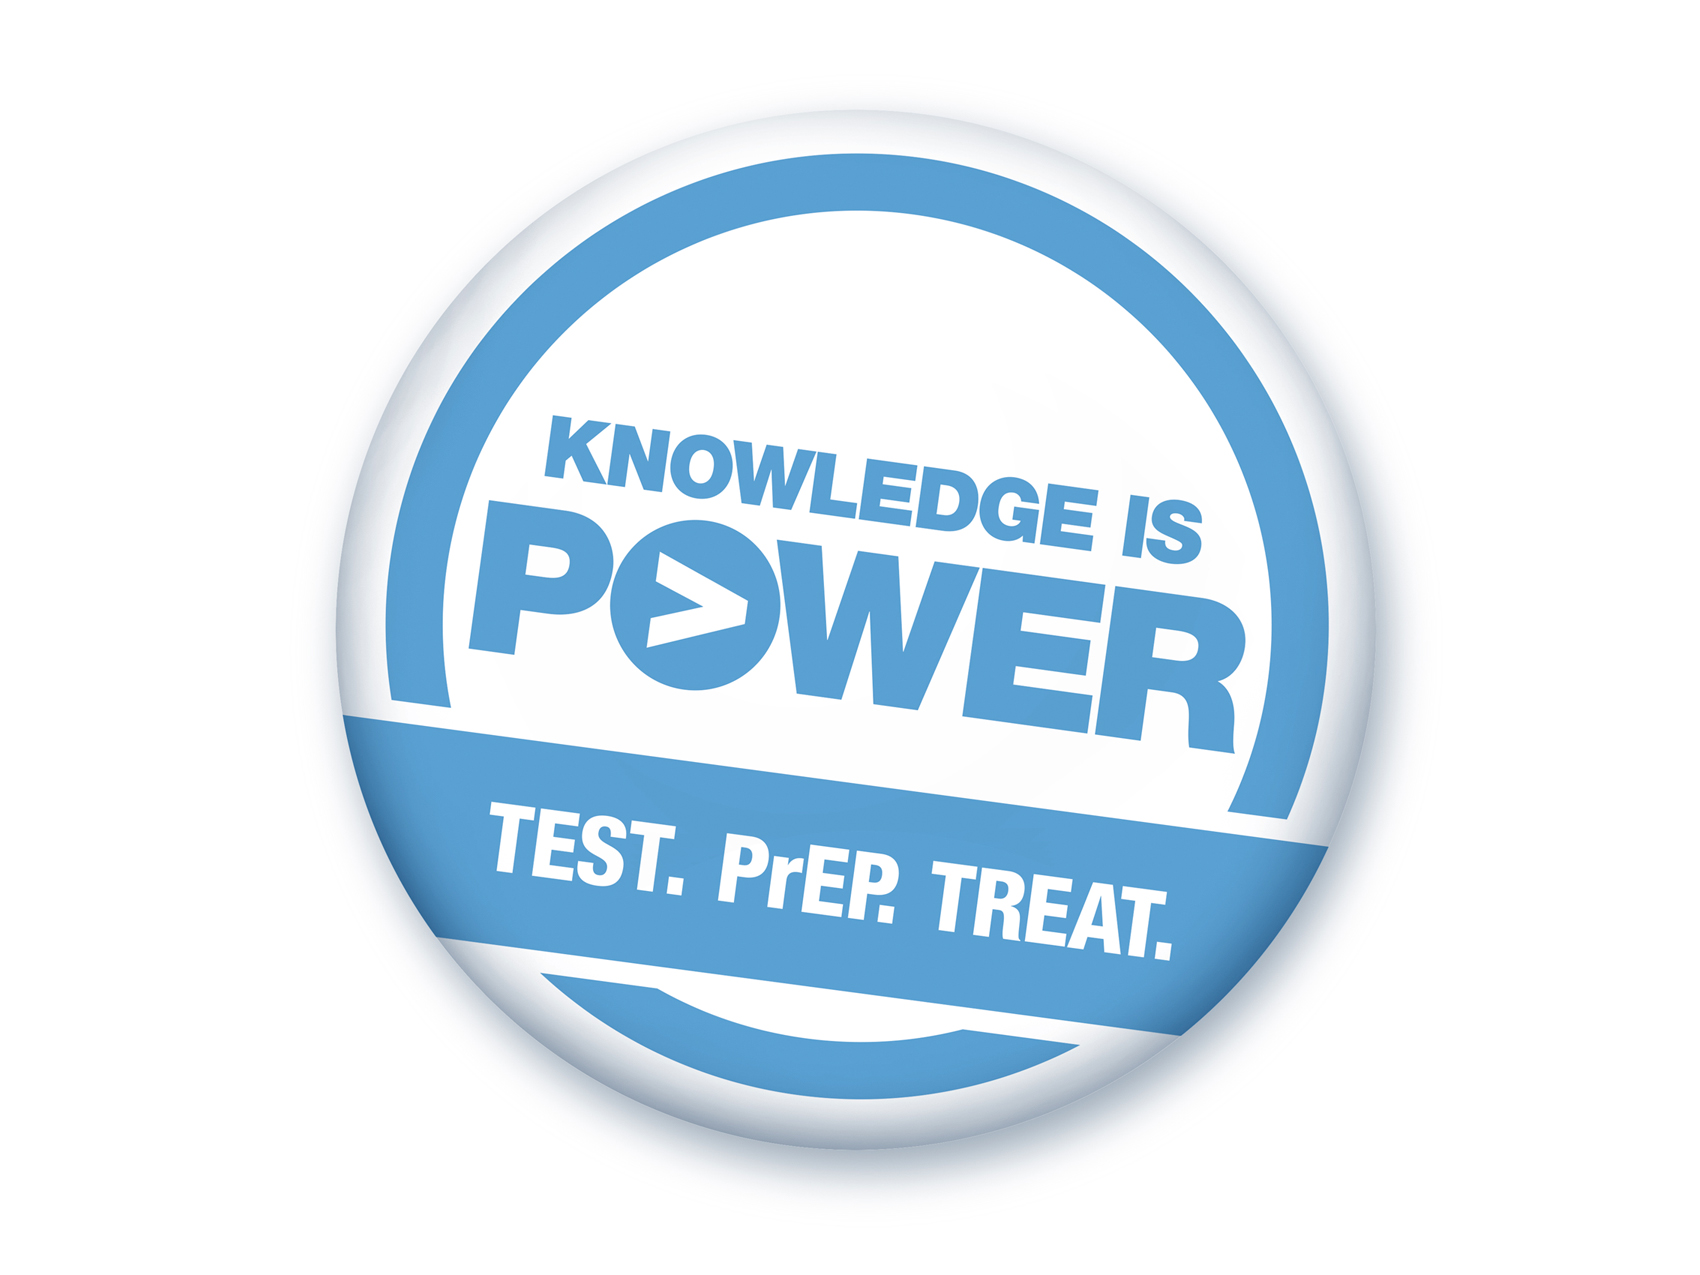 Knowledge is Power. Test. PrEP. Treat.